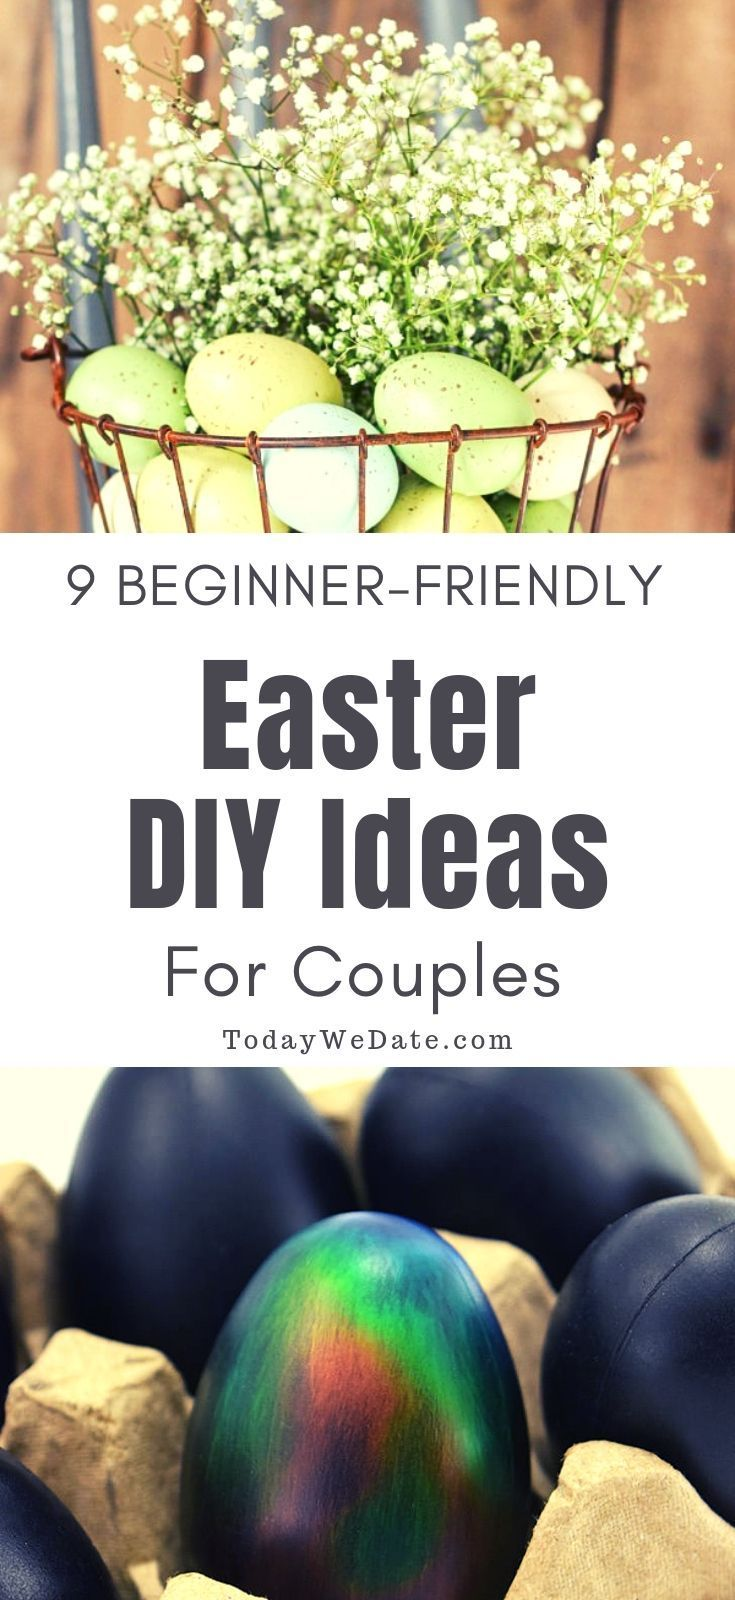 9 Easy Easter Diy Projects For Couples When Date Nights Can T